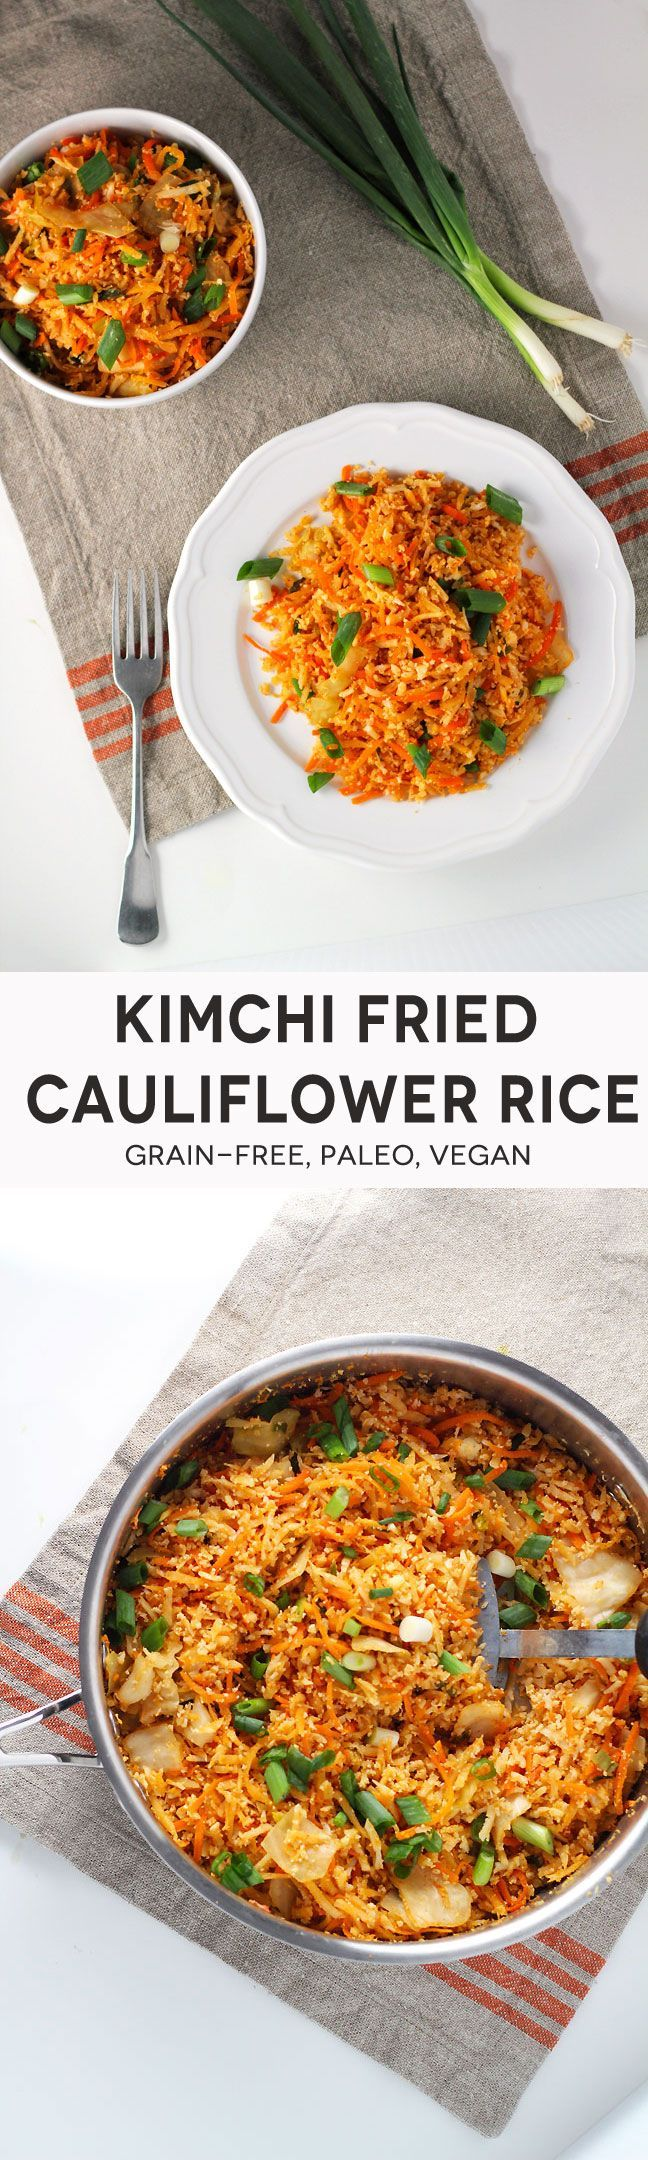 FRIED CAULIFLOWER ONLY THING I WOULD ADD IS MORE OIL LOTS MORE LOL ☺Kimchi Fried Cauliflower Rice